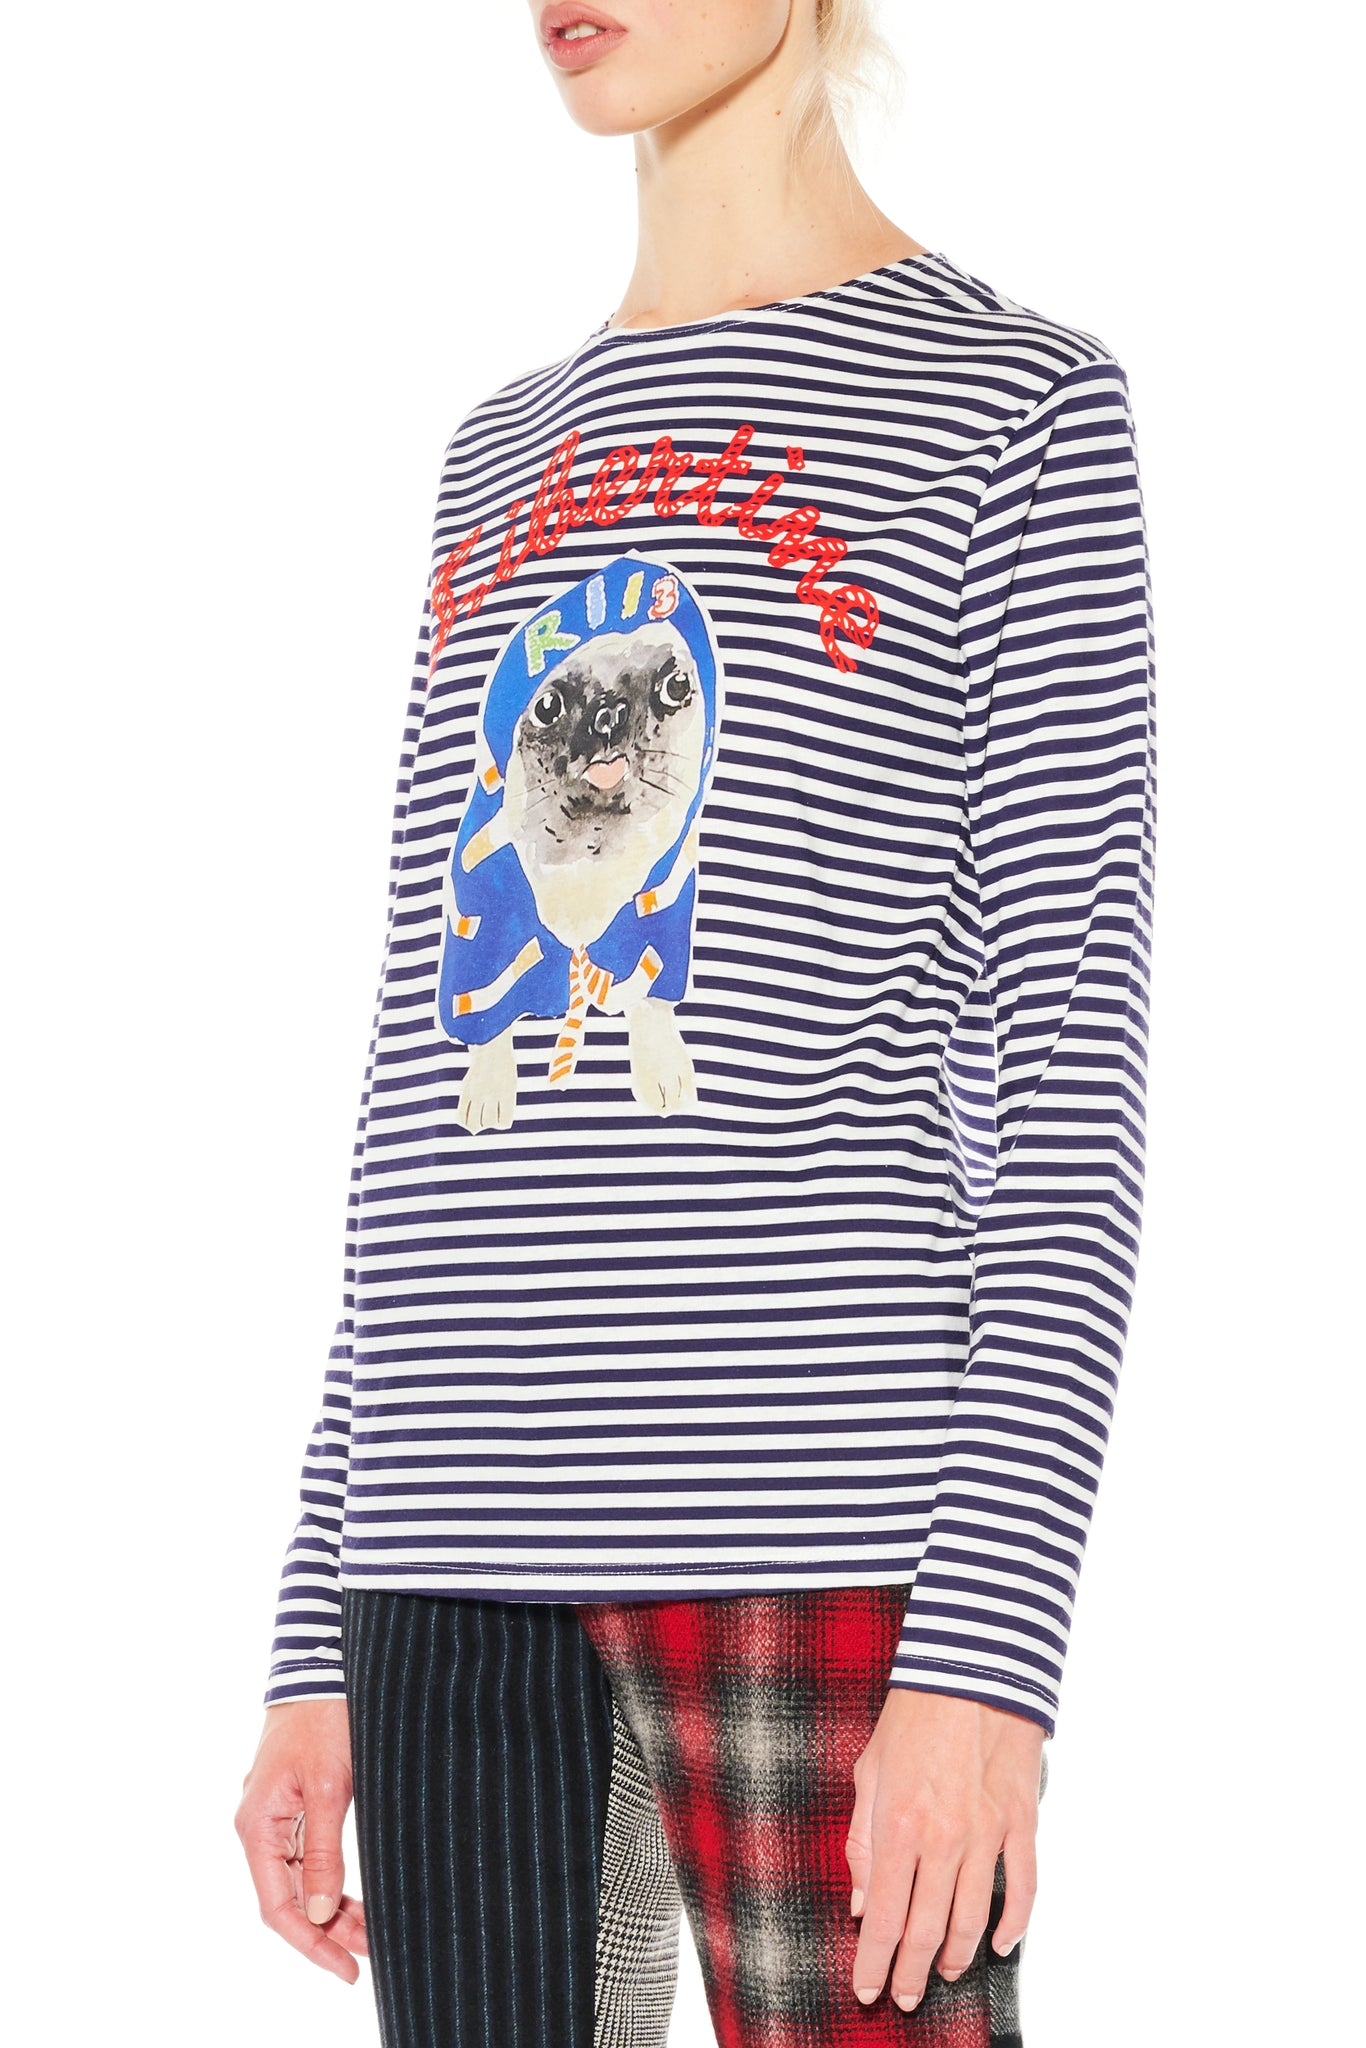 LIBERTINE PUG LONG SLEEVE T-SHIRT - Women's Tops - Libertine